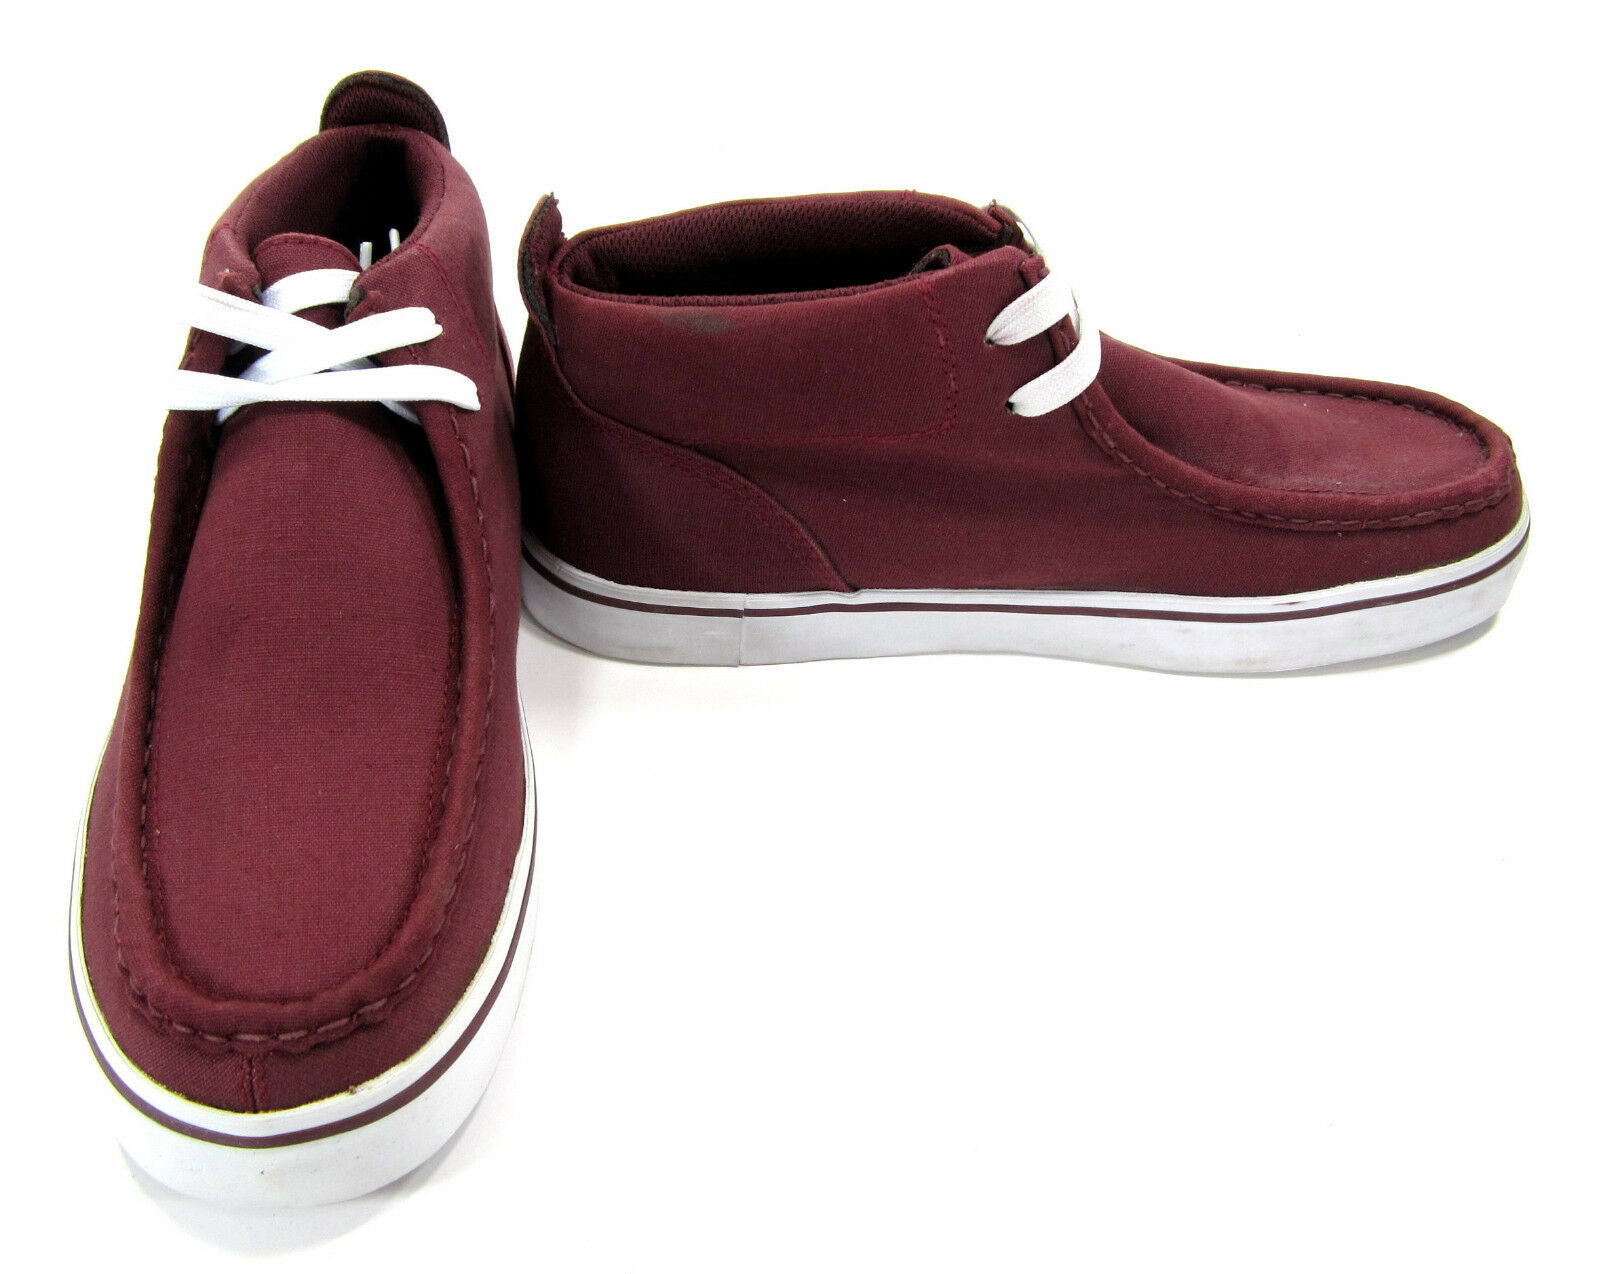 Lugz shoes Strider Lo Canvas Maroon Red Boots Size 9